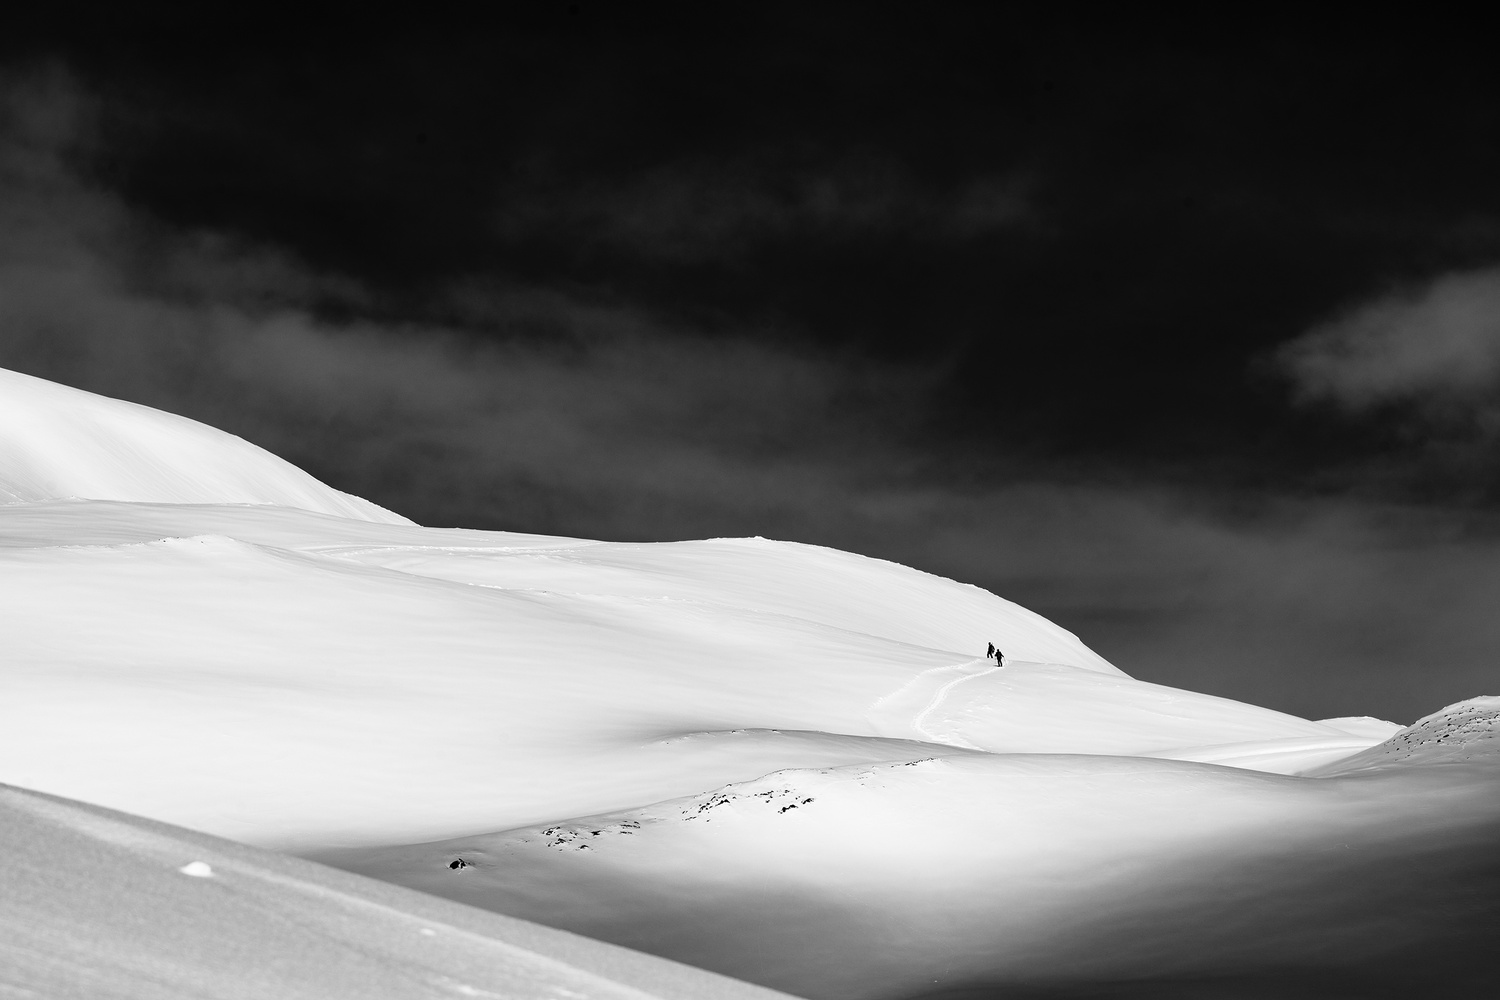 lonely wanderers by Otto Schlemmer